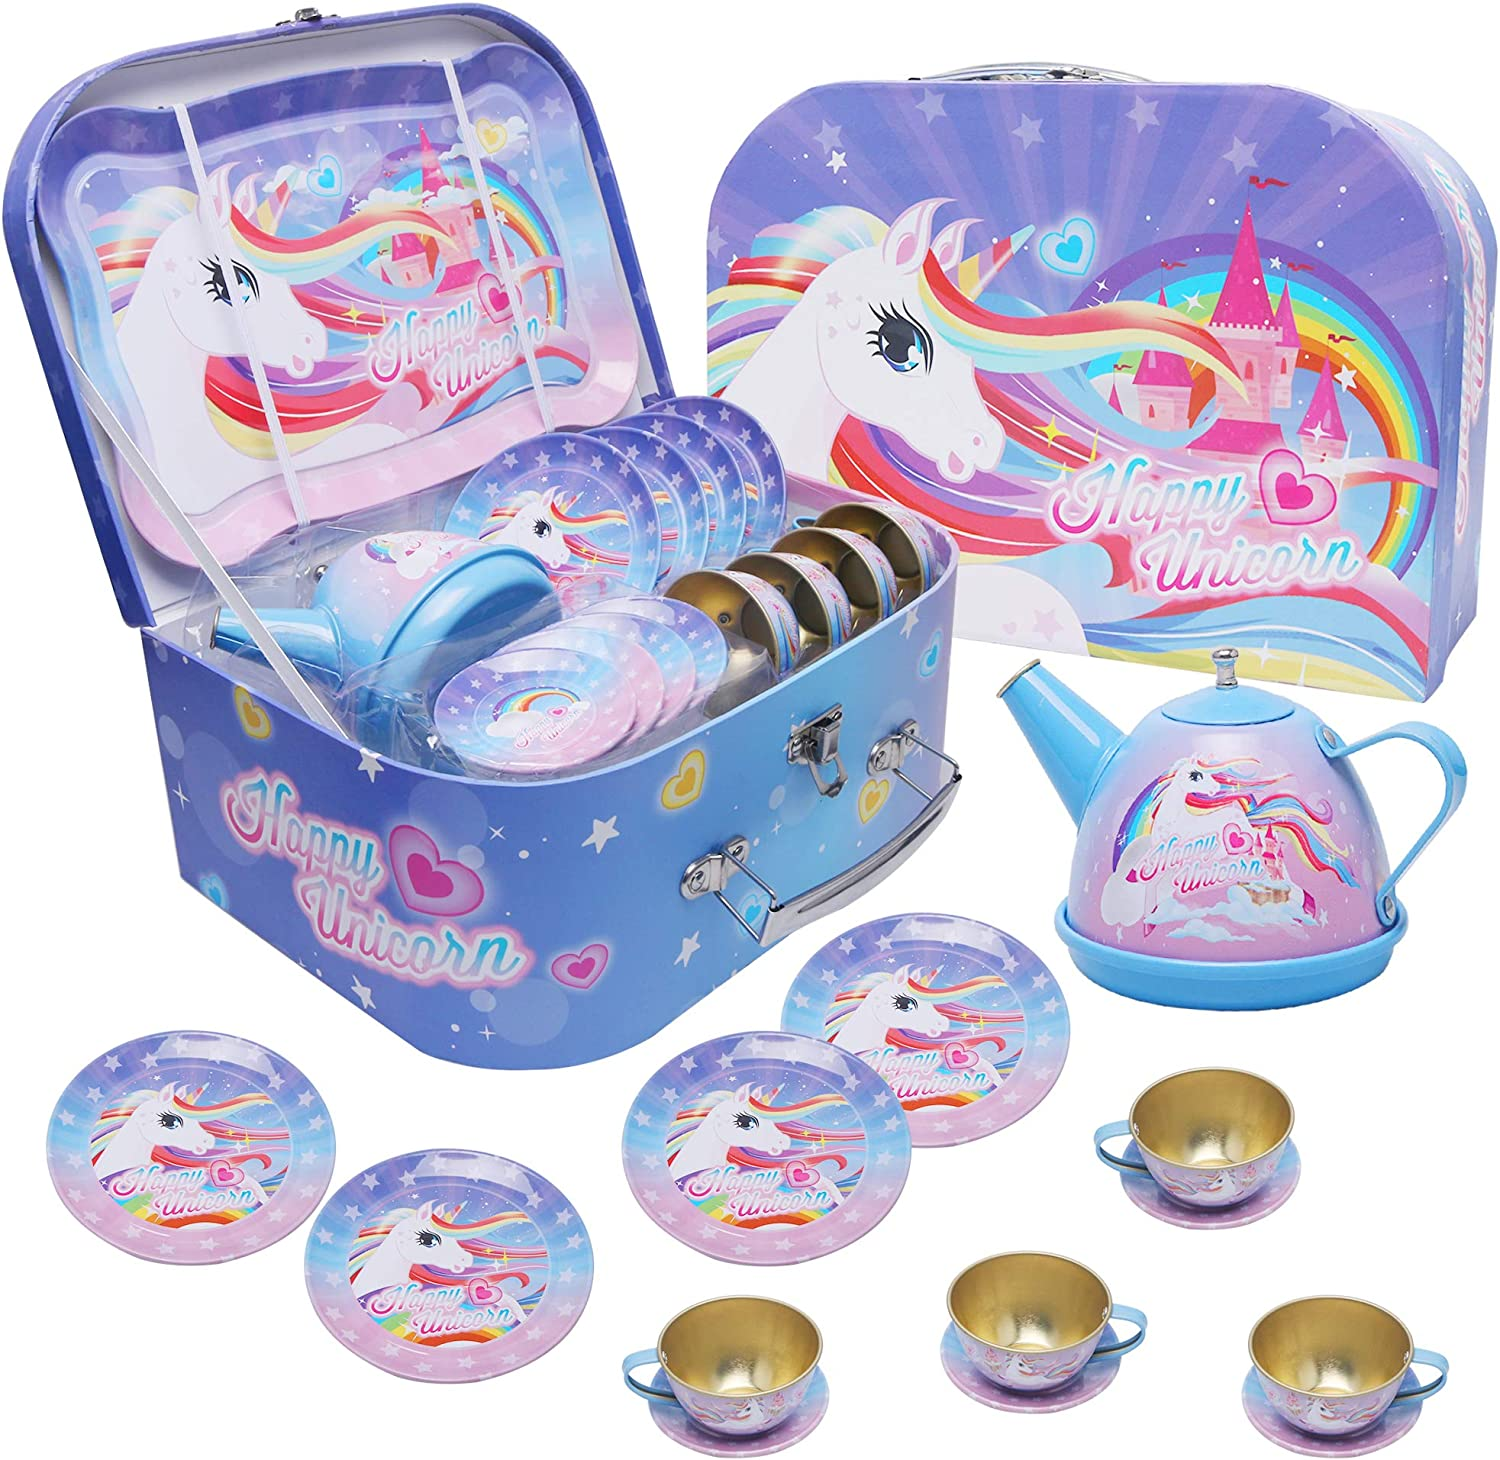 Alyoen Tea Party Set for Little Girls, Unicorn Kids Tea Toys for Kitchen Pretend Play, Tin Teapot Set with Carrying Case for Toddlers Boys – 15 Pieces